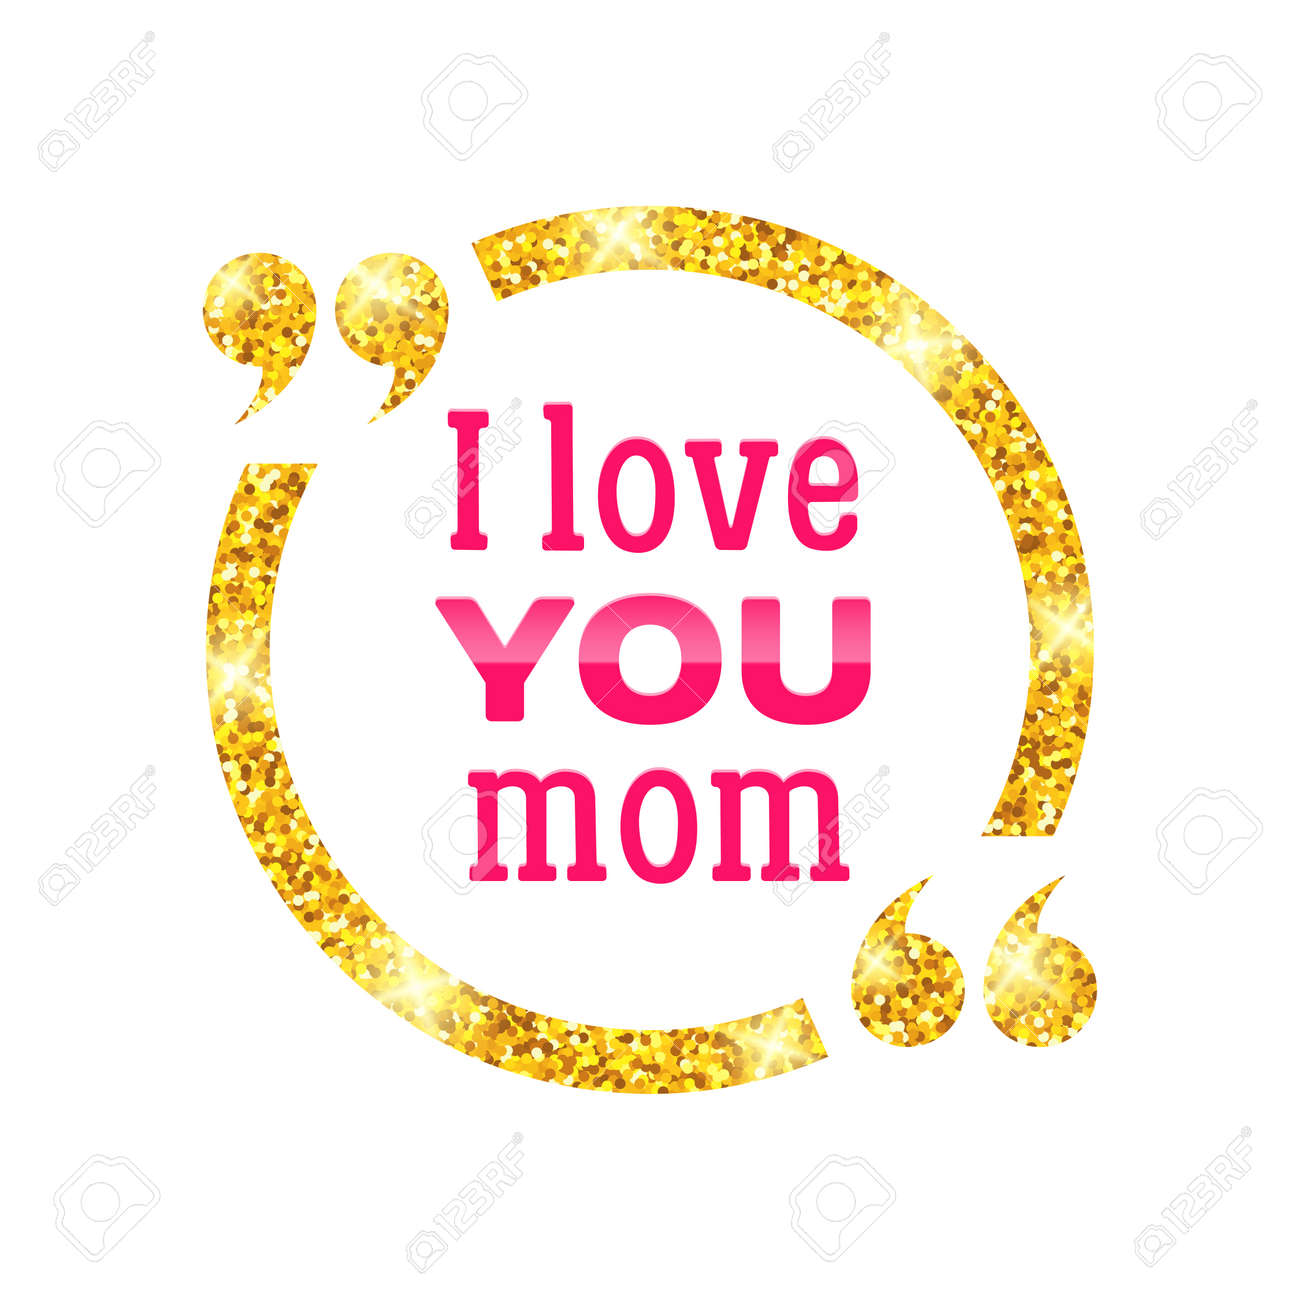 I Love You Mom Quotes I Love You Momhappy Mother Day Typographic Backgroundgolden